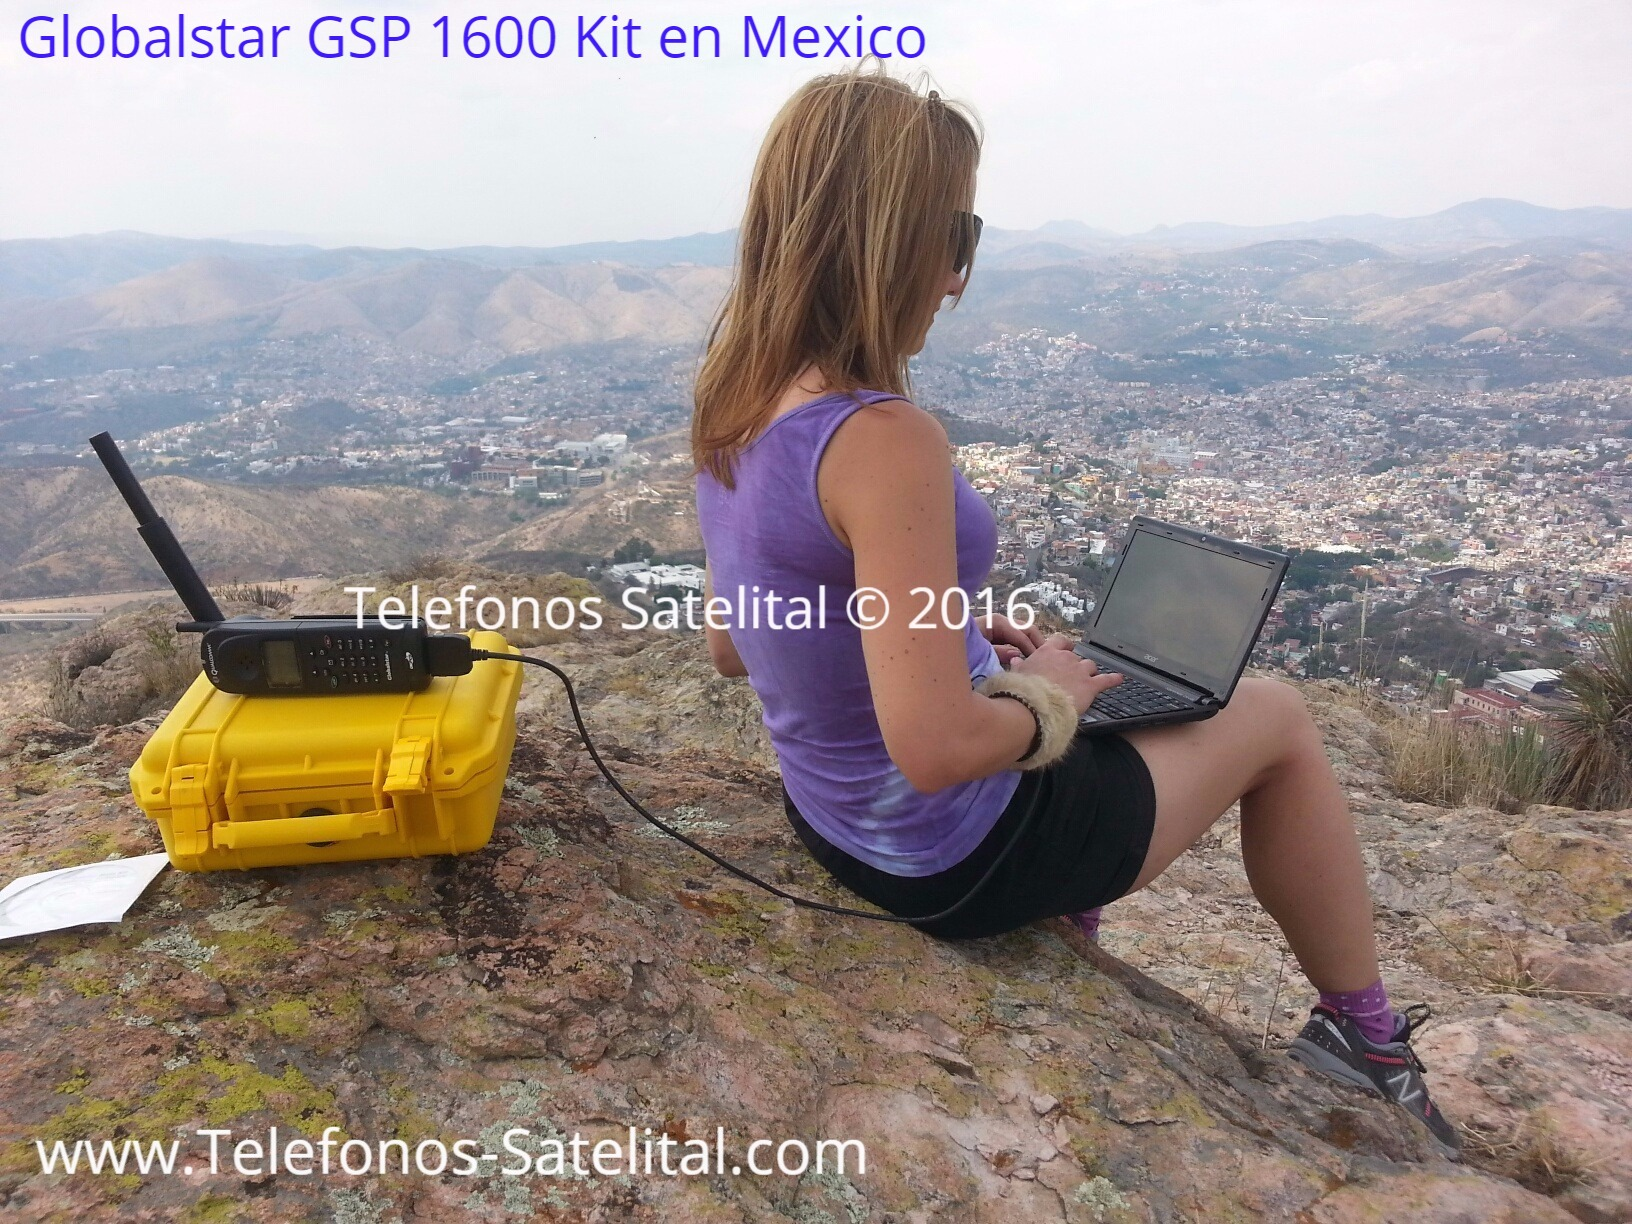 Global Star GSP 1600 Telefonos Satelitales en venta en Mexico